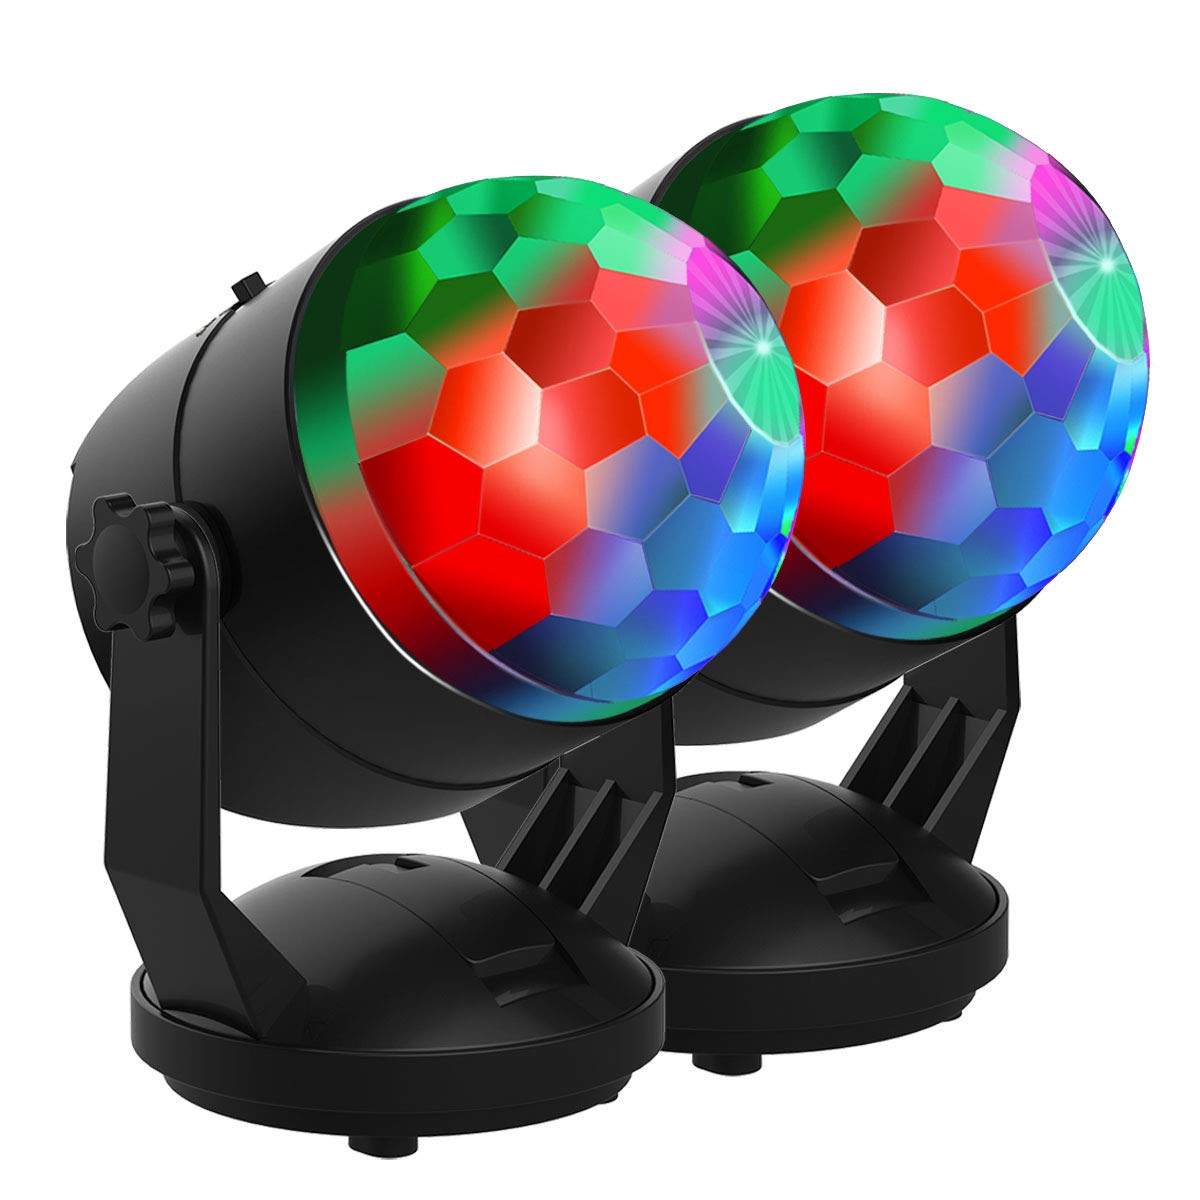 【New Arrival 6 Light Bulbs DJ Party Lights Sound Activated Disco Ball Strobe Light 7 Lighting Colors USB Battery Powered Perfect for Kids Festival Celebration Birthday Xmas Wedding Party 2 Packs